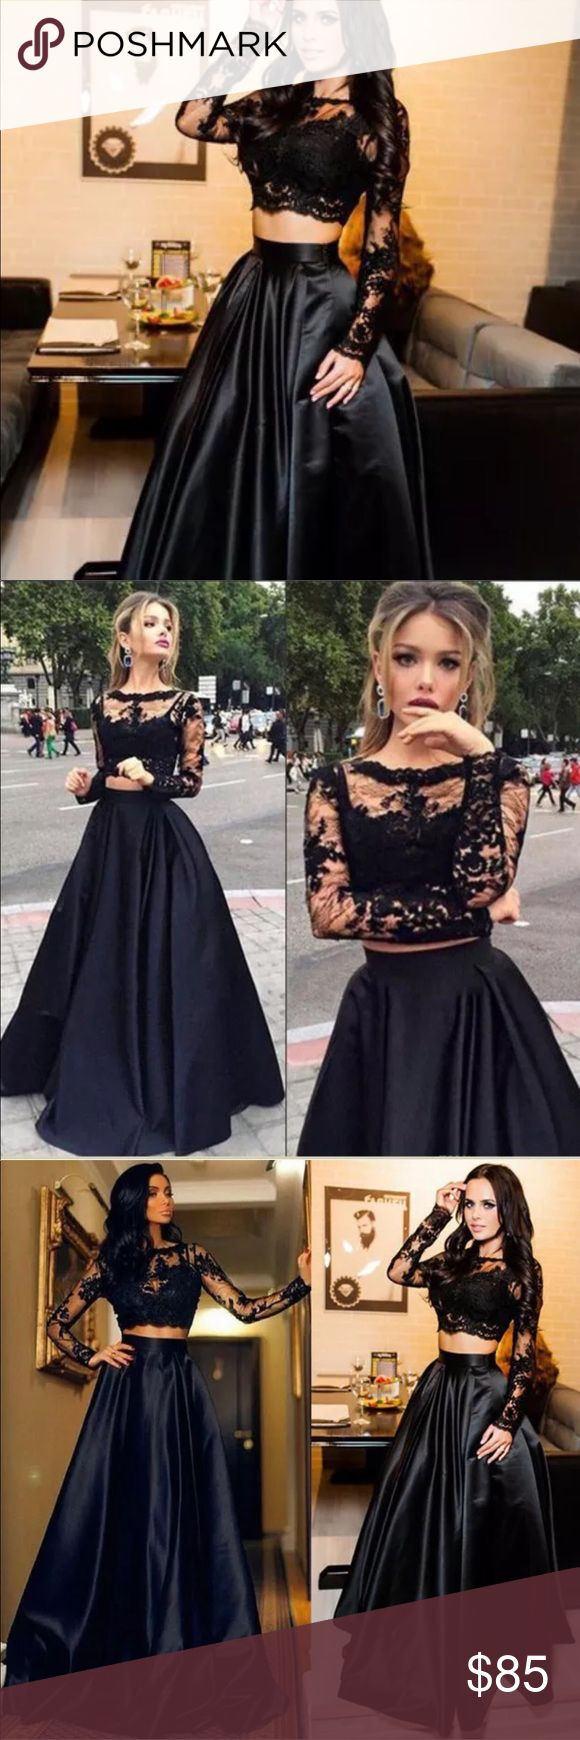 """New! Black Lace Crop Top + High Waist Maxi Skirt New! Black Lace Crop Top + High Waist Maxi Skirt • Available In Size Small • Brand new/ unbranded /boutique • More Sizes coming Soon! Preorder yours for New Year's Eve! Formal/gown/2017 Trend   Small (Tag M): Skirt waist 26-28""""/45"""" long Top: 14"""" shoulders/ 21"""" Sleeves/ 14"""" long / 14"""" waist / 16.5"""" pit to pit   Skirt is black satin with pleats and Zippered closure. 95% poly/5% spandex. Lace top is cropped with long sleeves and a small, discreet…"""